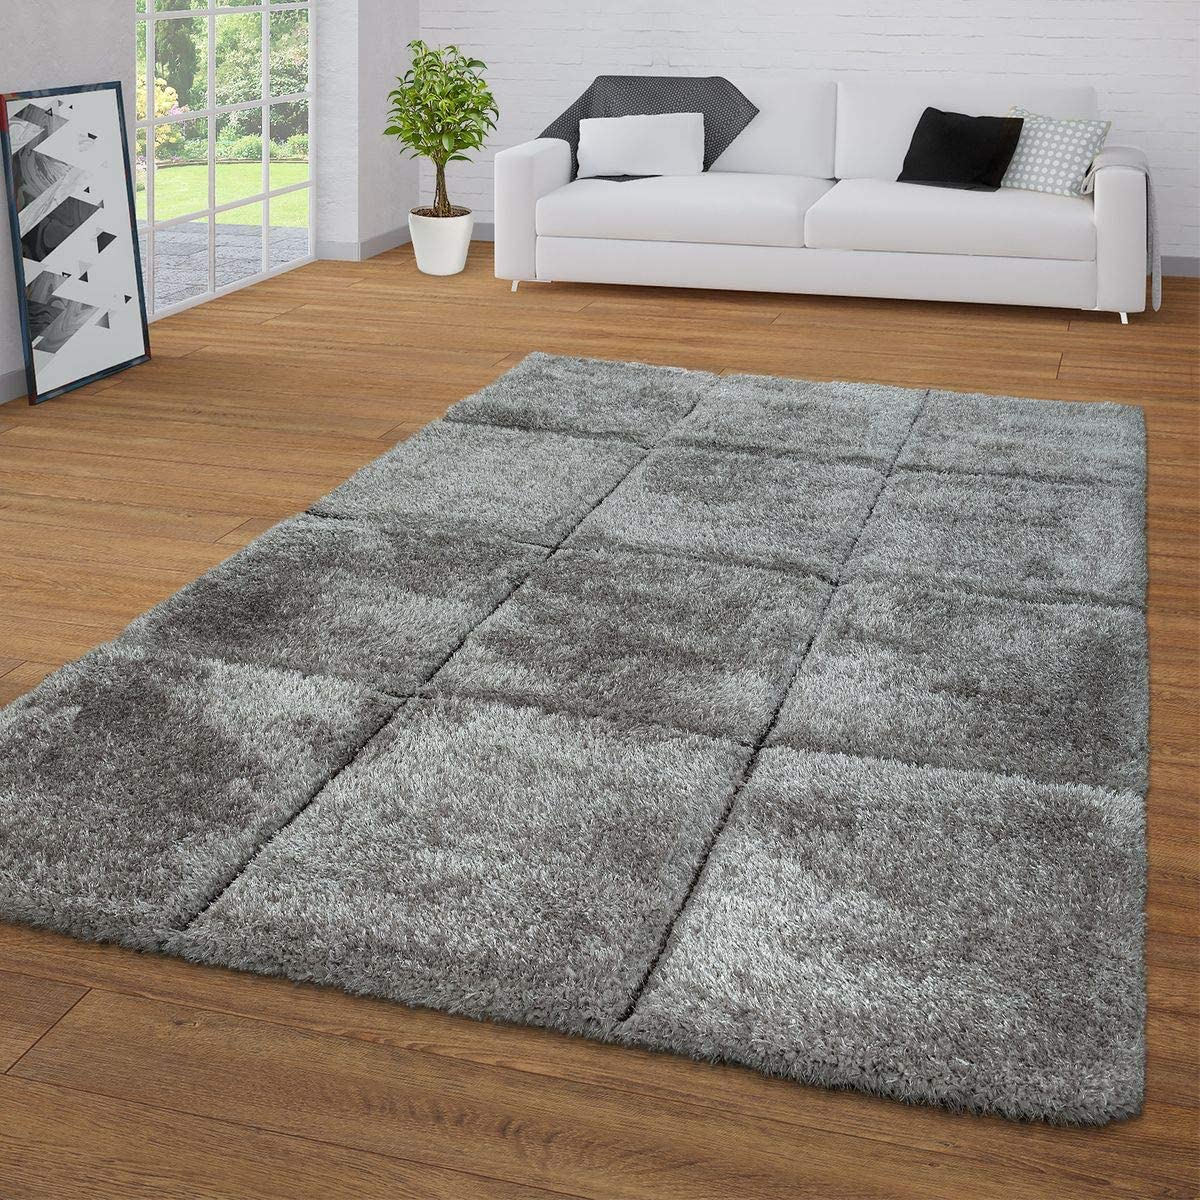 Shag Rug with Checkered Pattern Pastel Colors Fluffy High Pile Area Rug for Living Room, Size 6 7 x 9 2 , Colour Grey